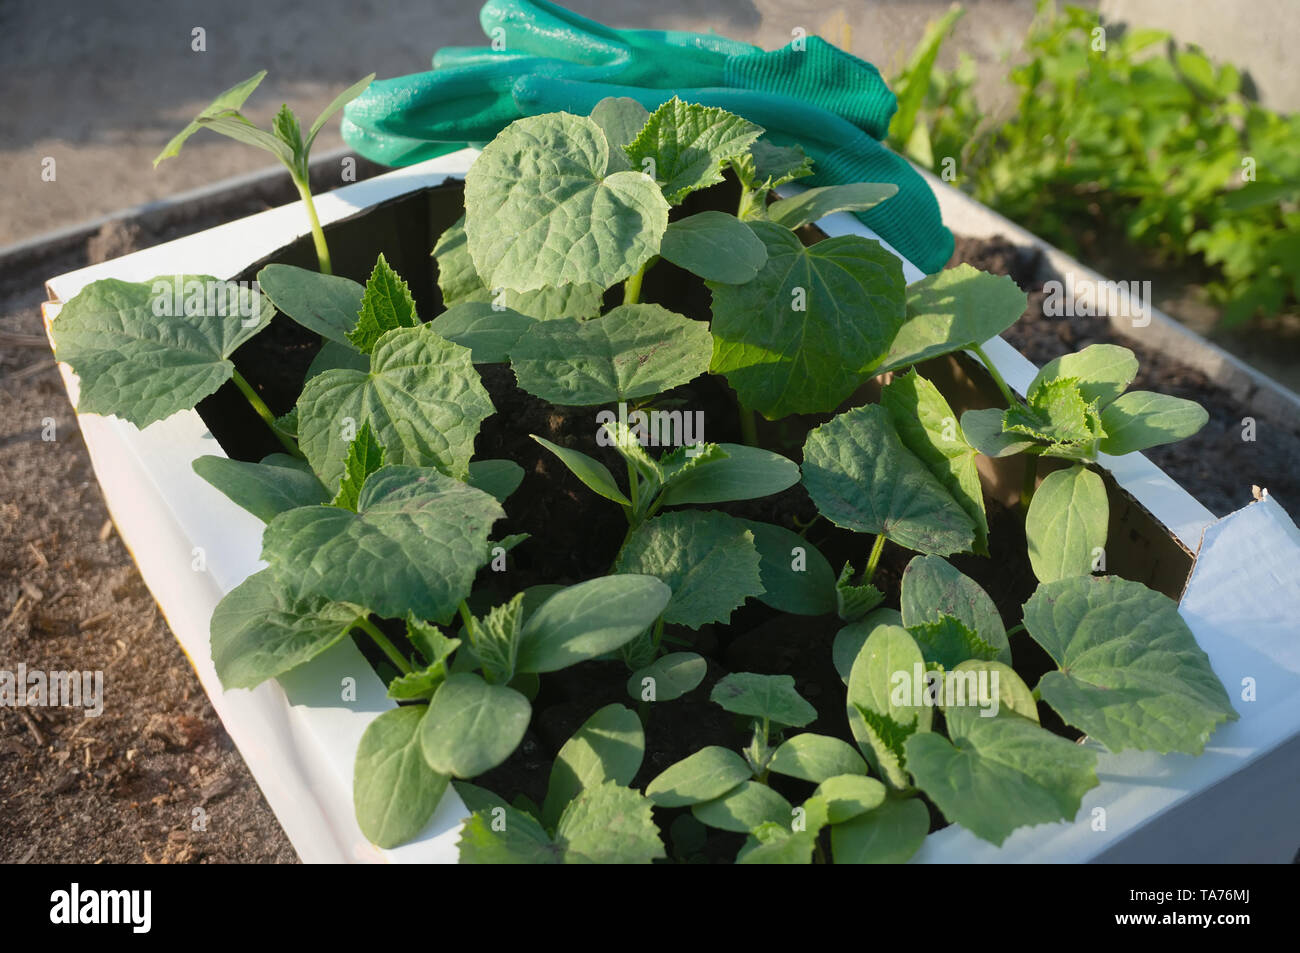 Cucumber seedlings in a cardboard eco-friendly container are ready for planting in a greenhouse. Spring work in the garden. - Stock Image